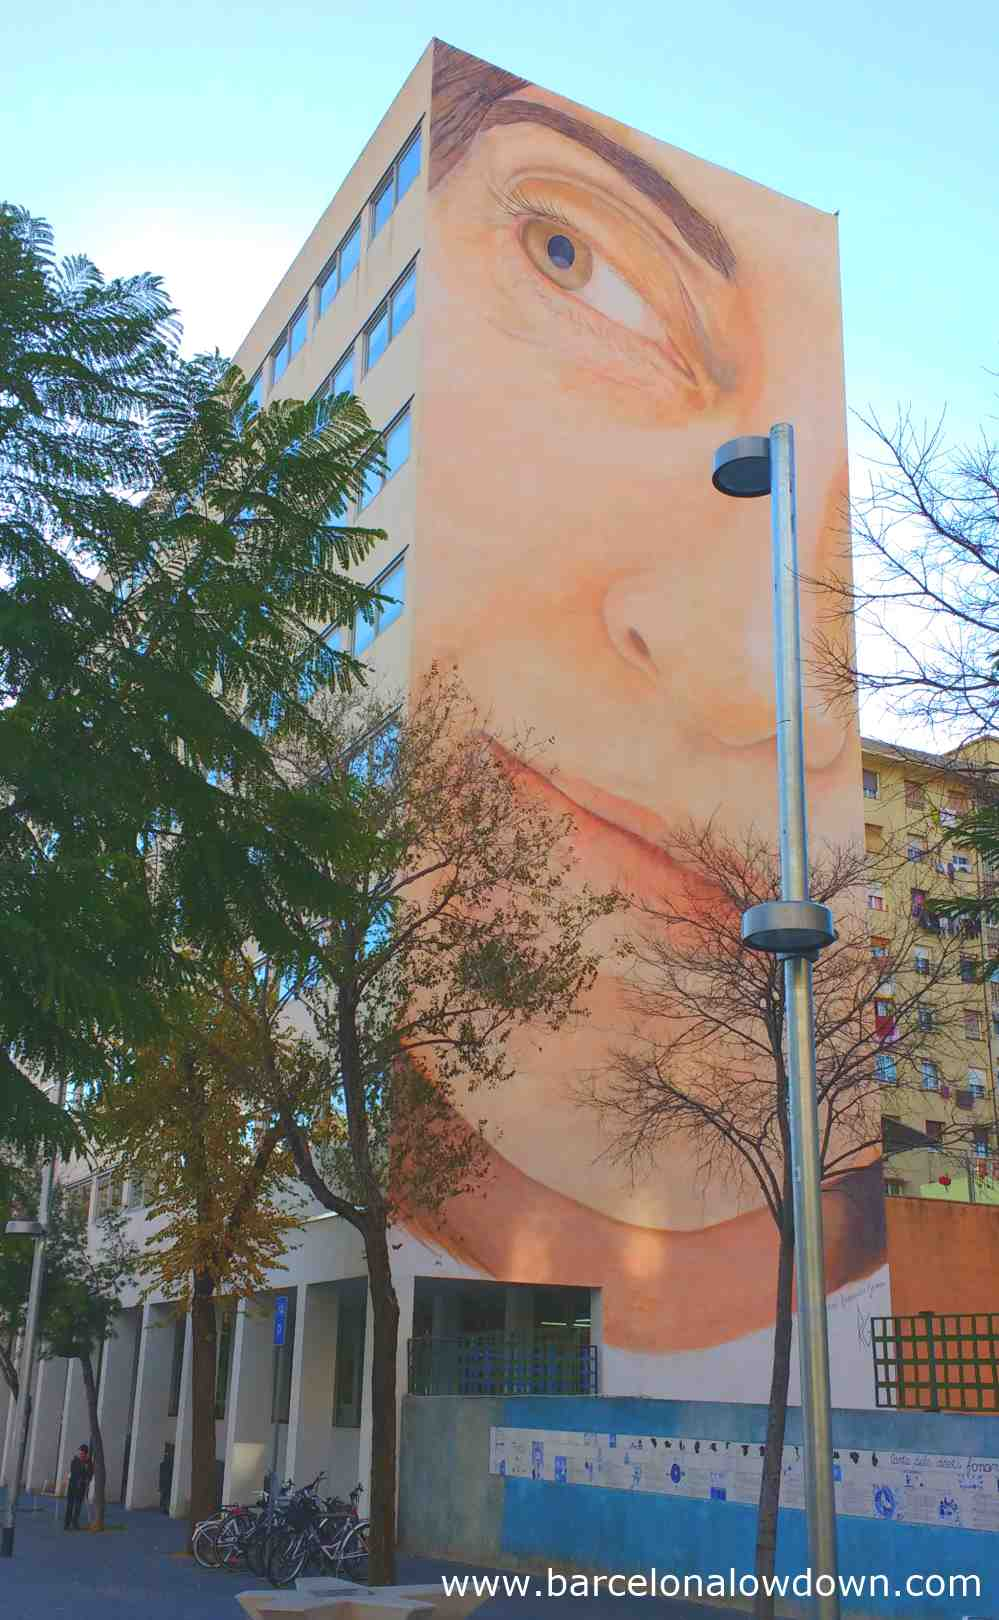 Giant street art portrait of a woman by Cuban artist Jorge Rodriguez in Barcelona Spain